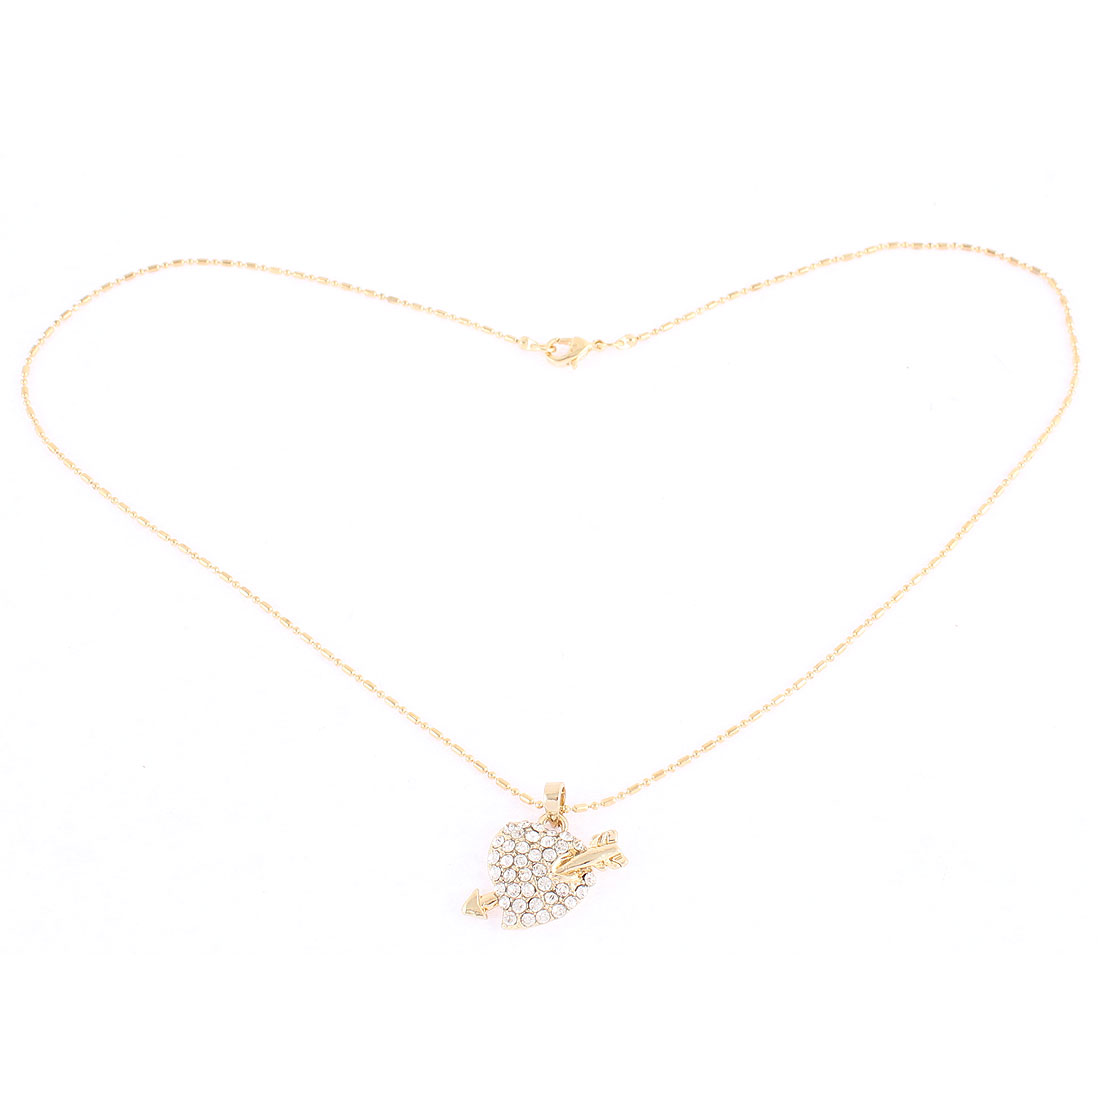 Lady Rhinestone Faux Crystal Pendant Gold Tone Necklace Jewelry